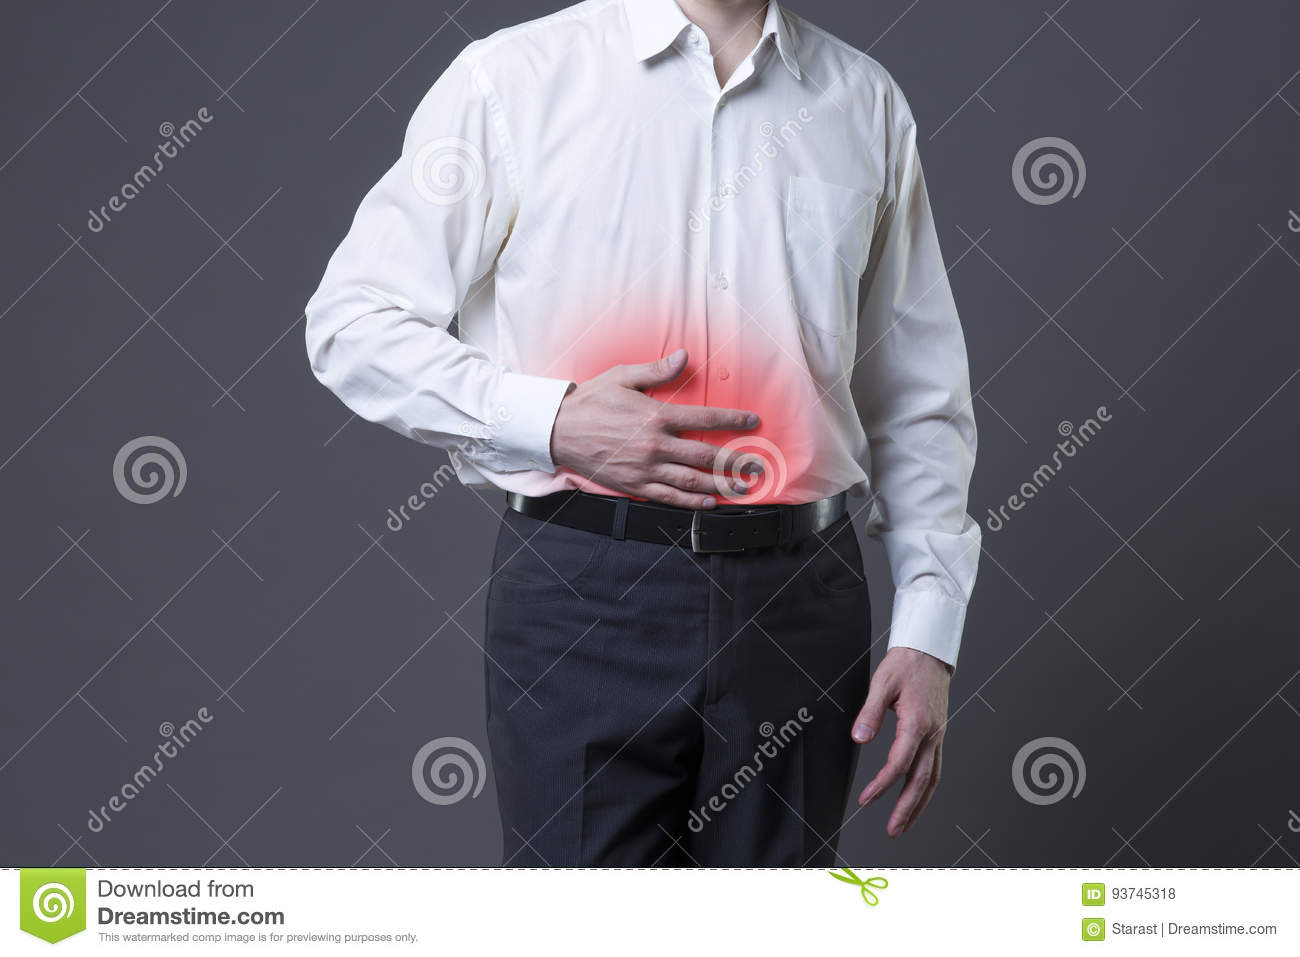 Man with abdominal pain, stomach ache on gray background